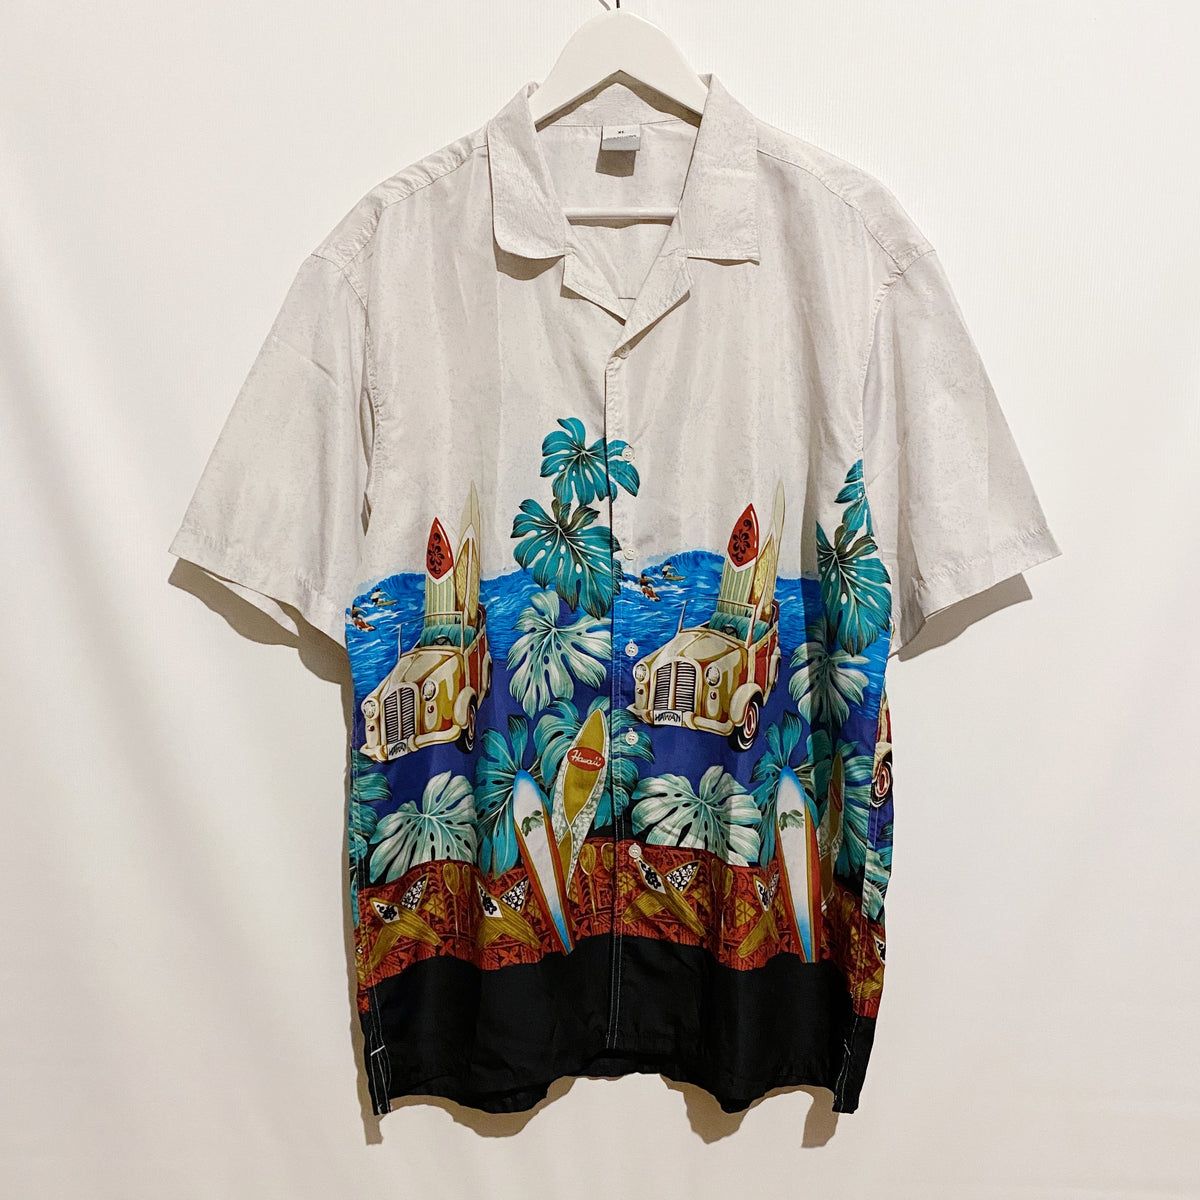 Solutions Surfboards Hawaiian Shirt Vintage 90's Mens XL